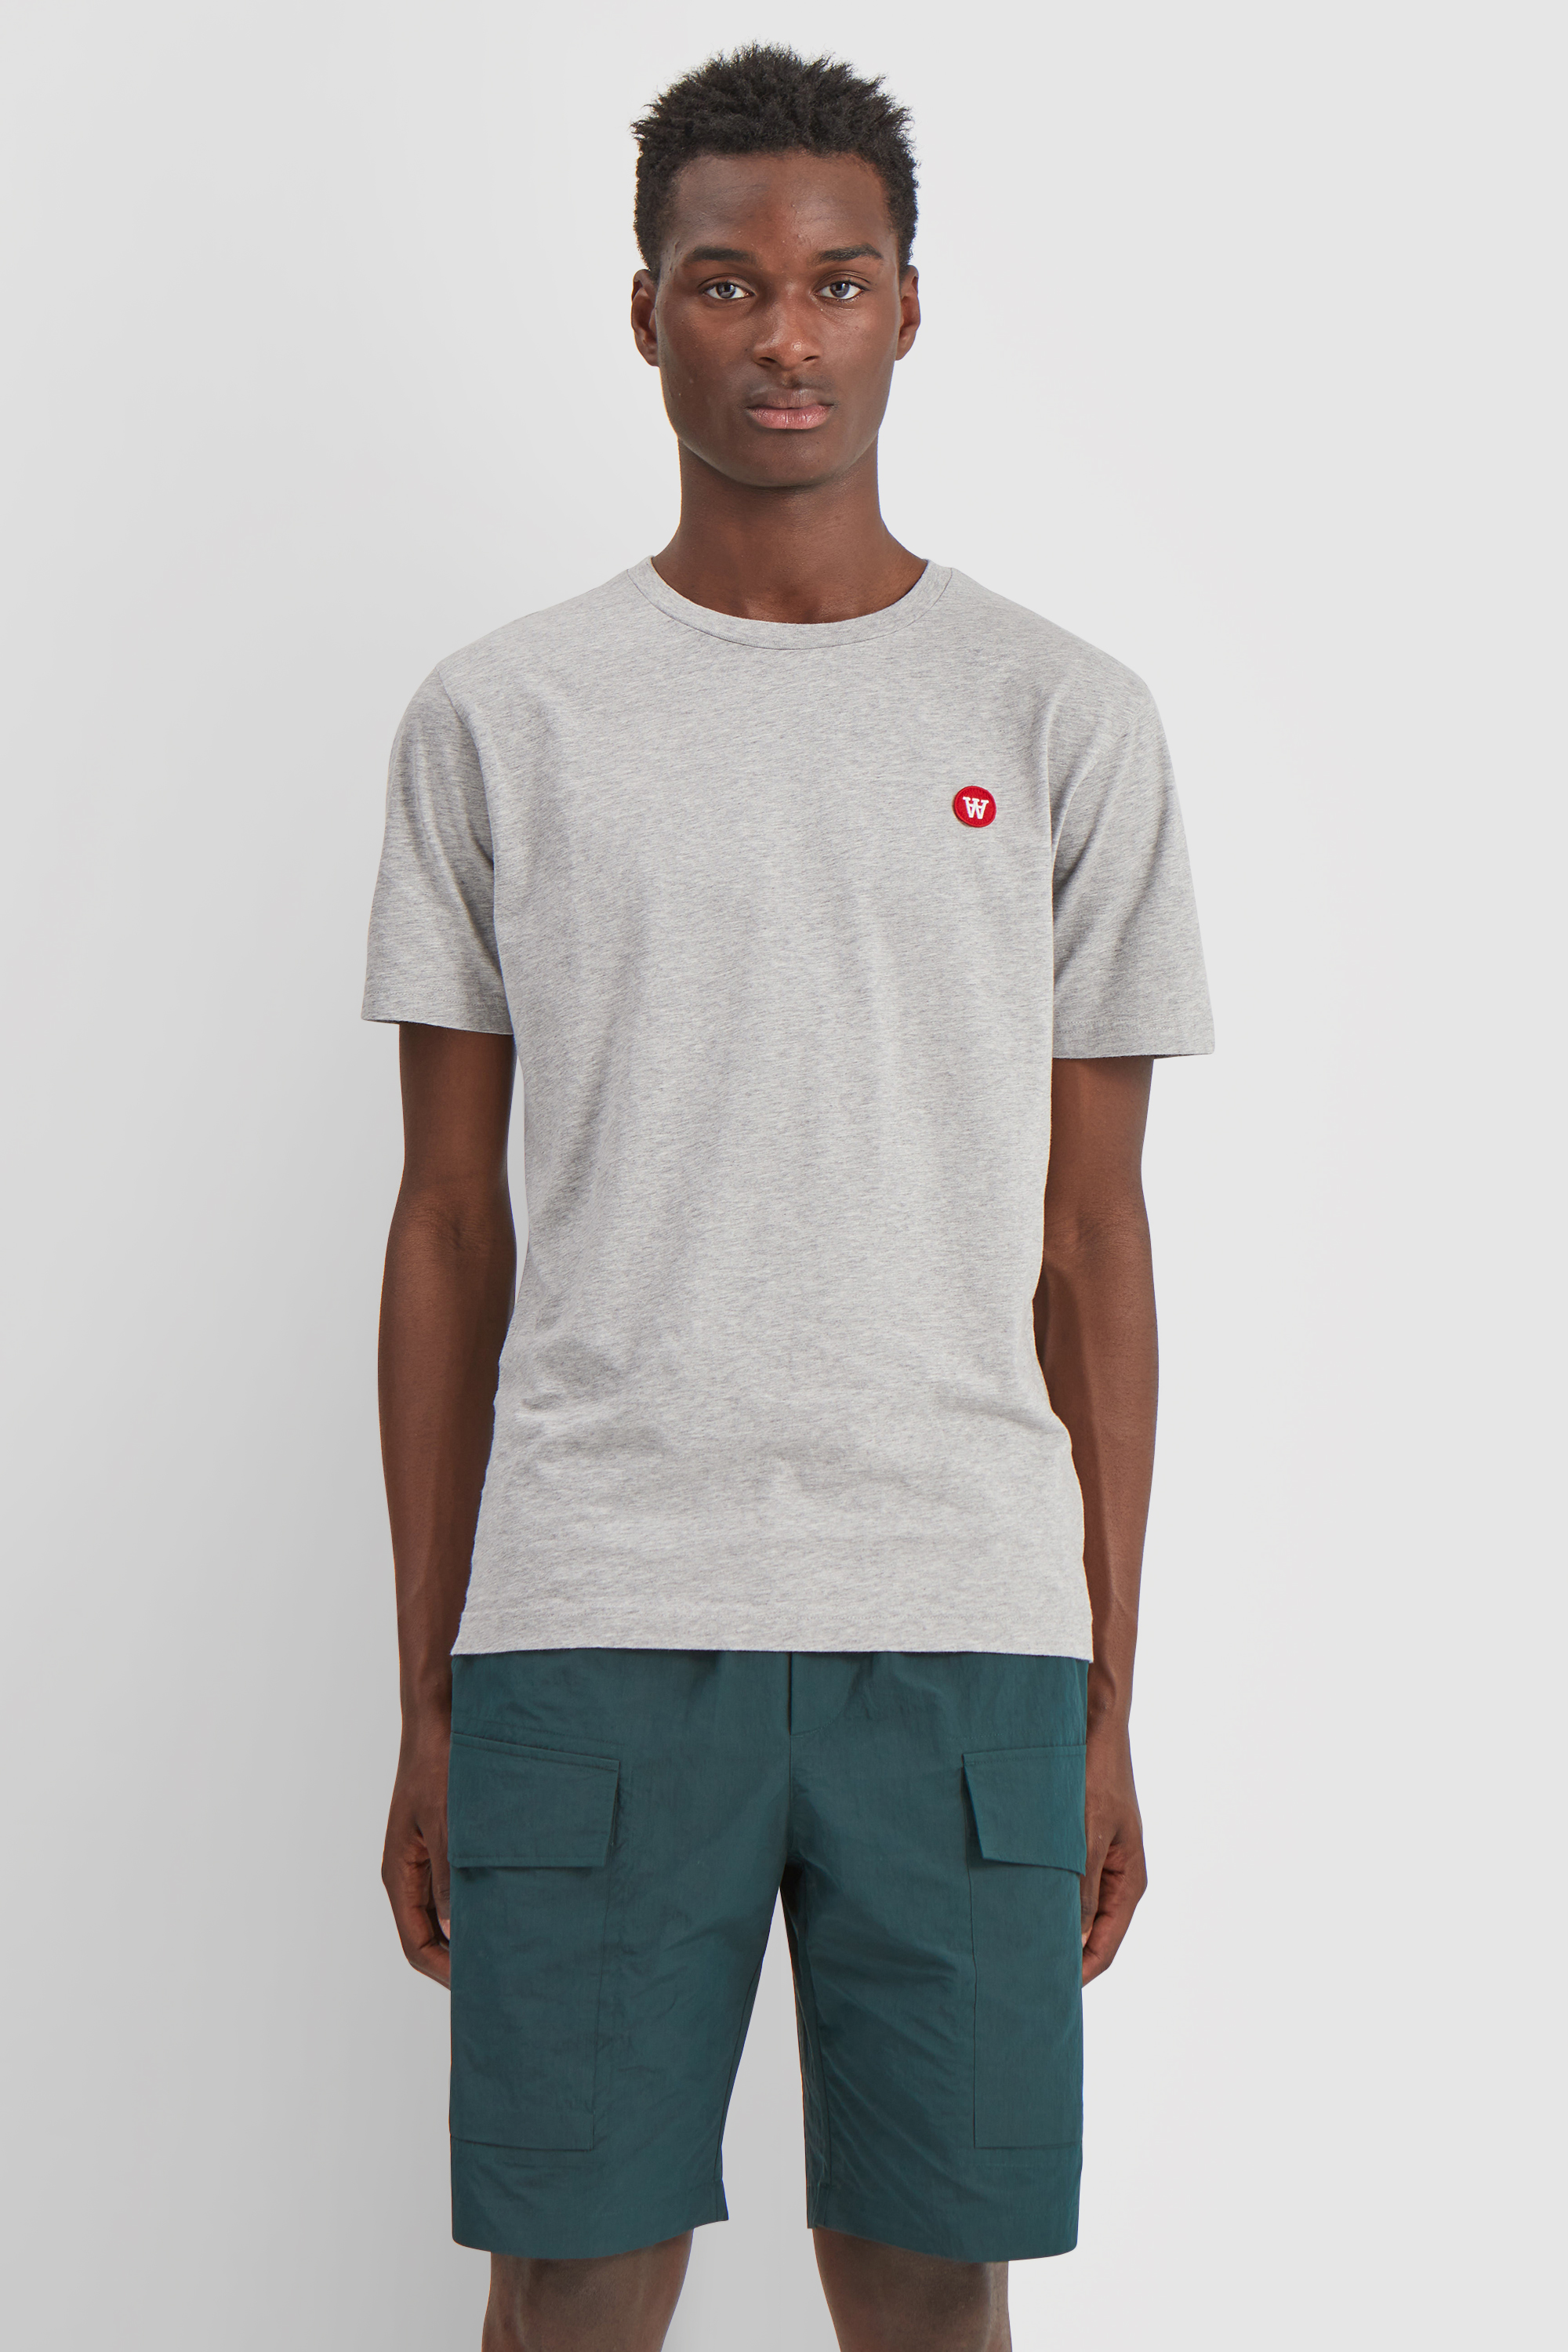 Wood Wood Double A Ace t-shirt, grey melange, small